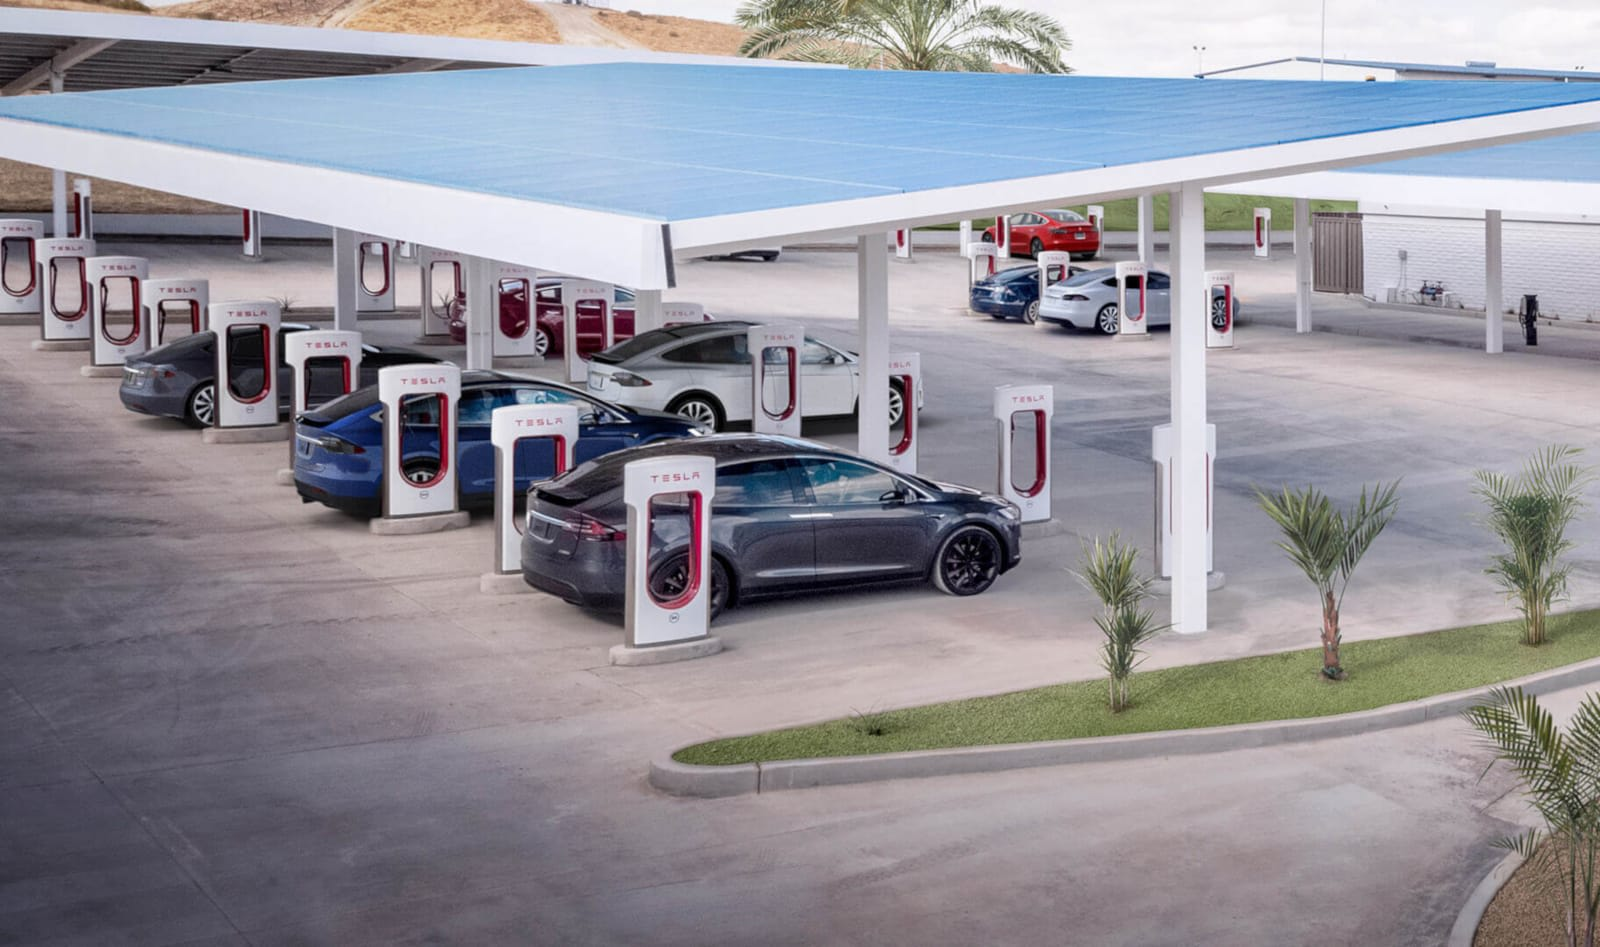 tesla 39 s supercharger network will cover all of europe in 2019. Black Bedroom Furniture Sets. Home Design Ideas